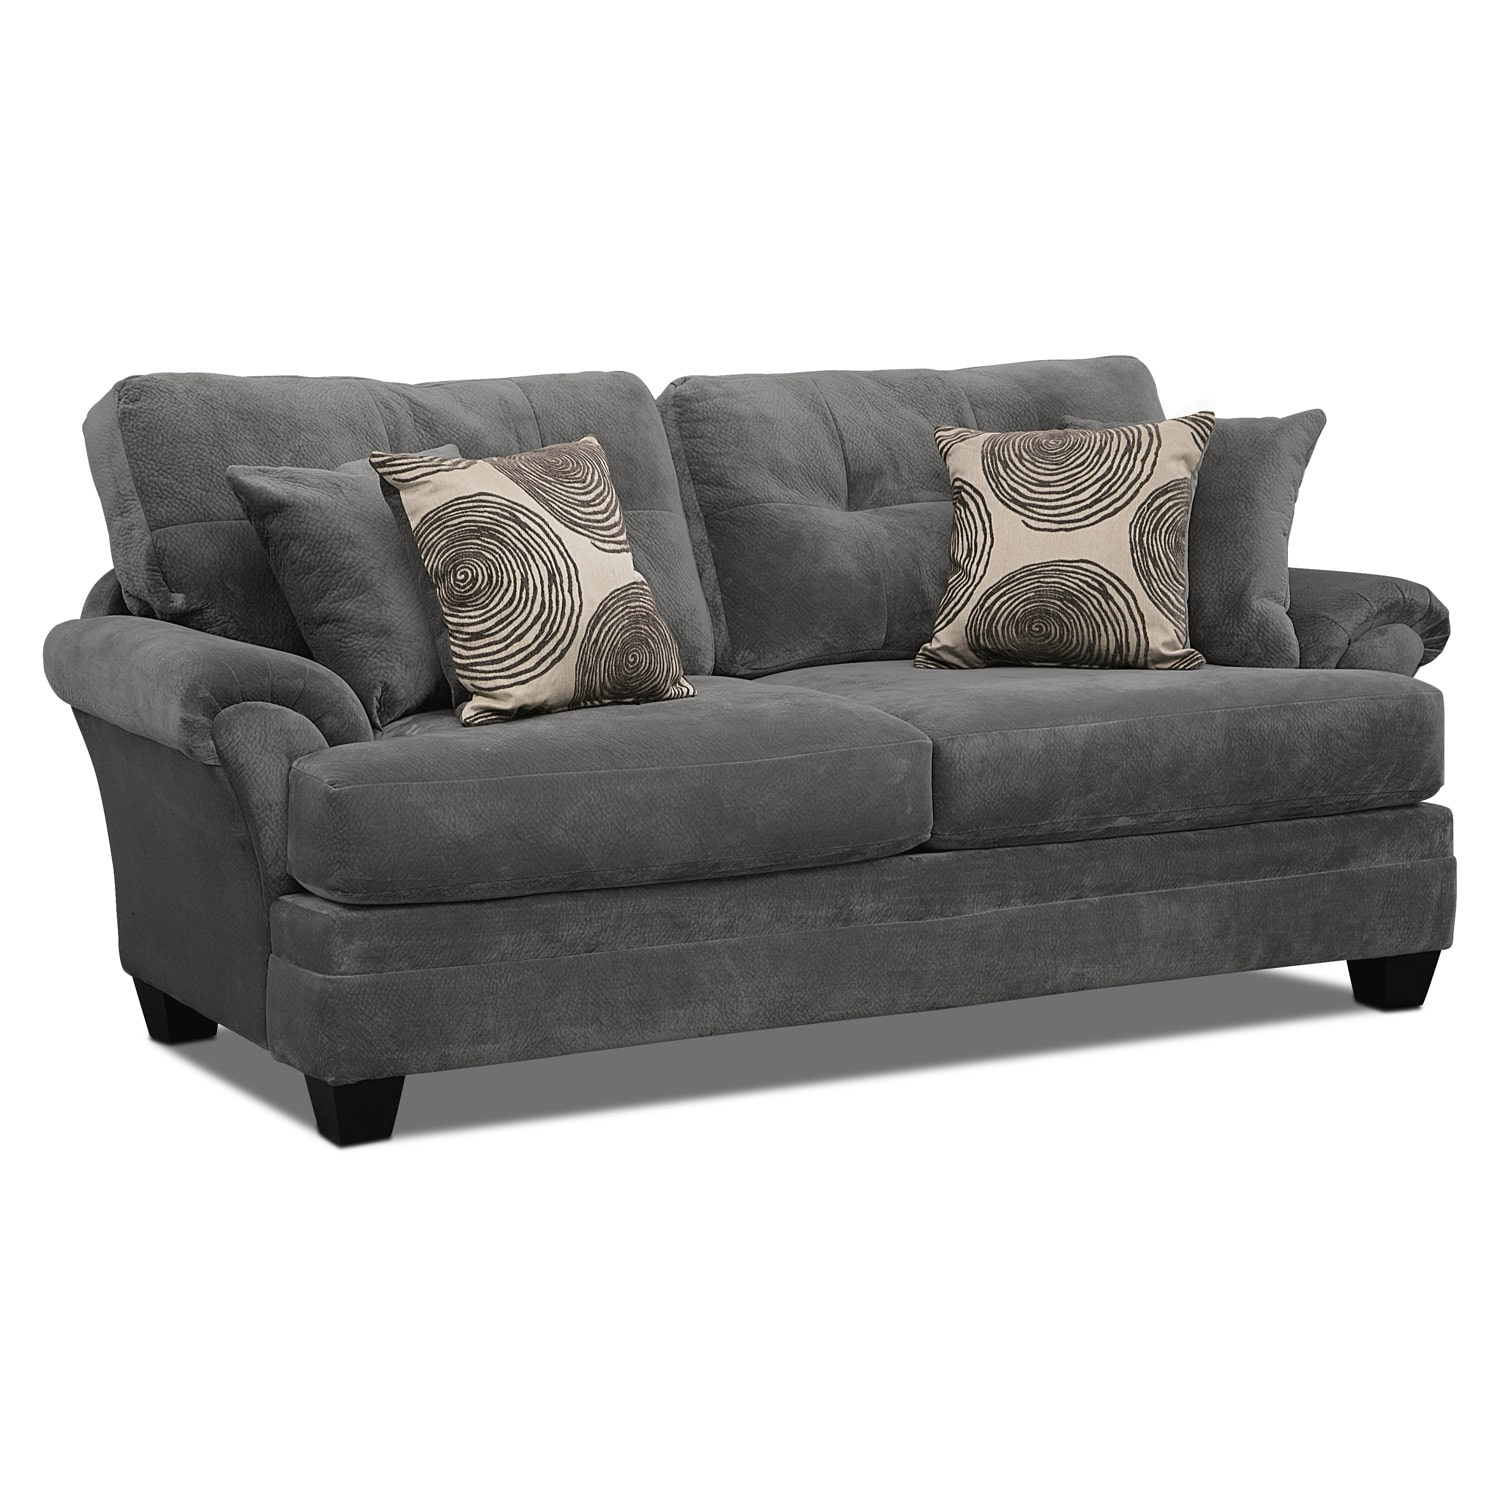 living room couches. Cordelle Sofa  Gray Sofas Couches Living Room Seating American Signature Furniture